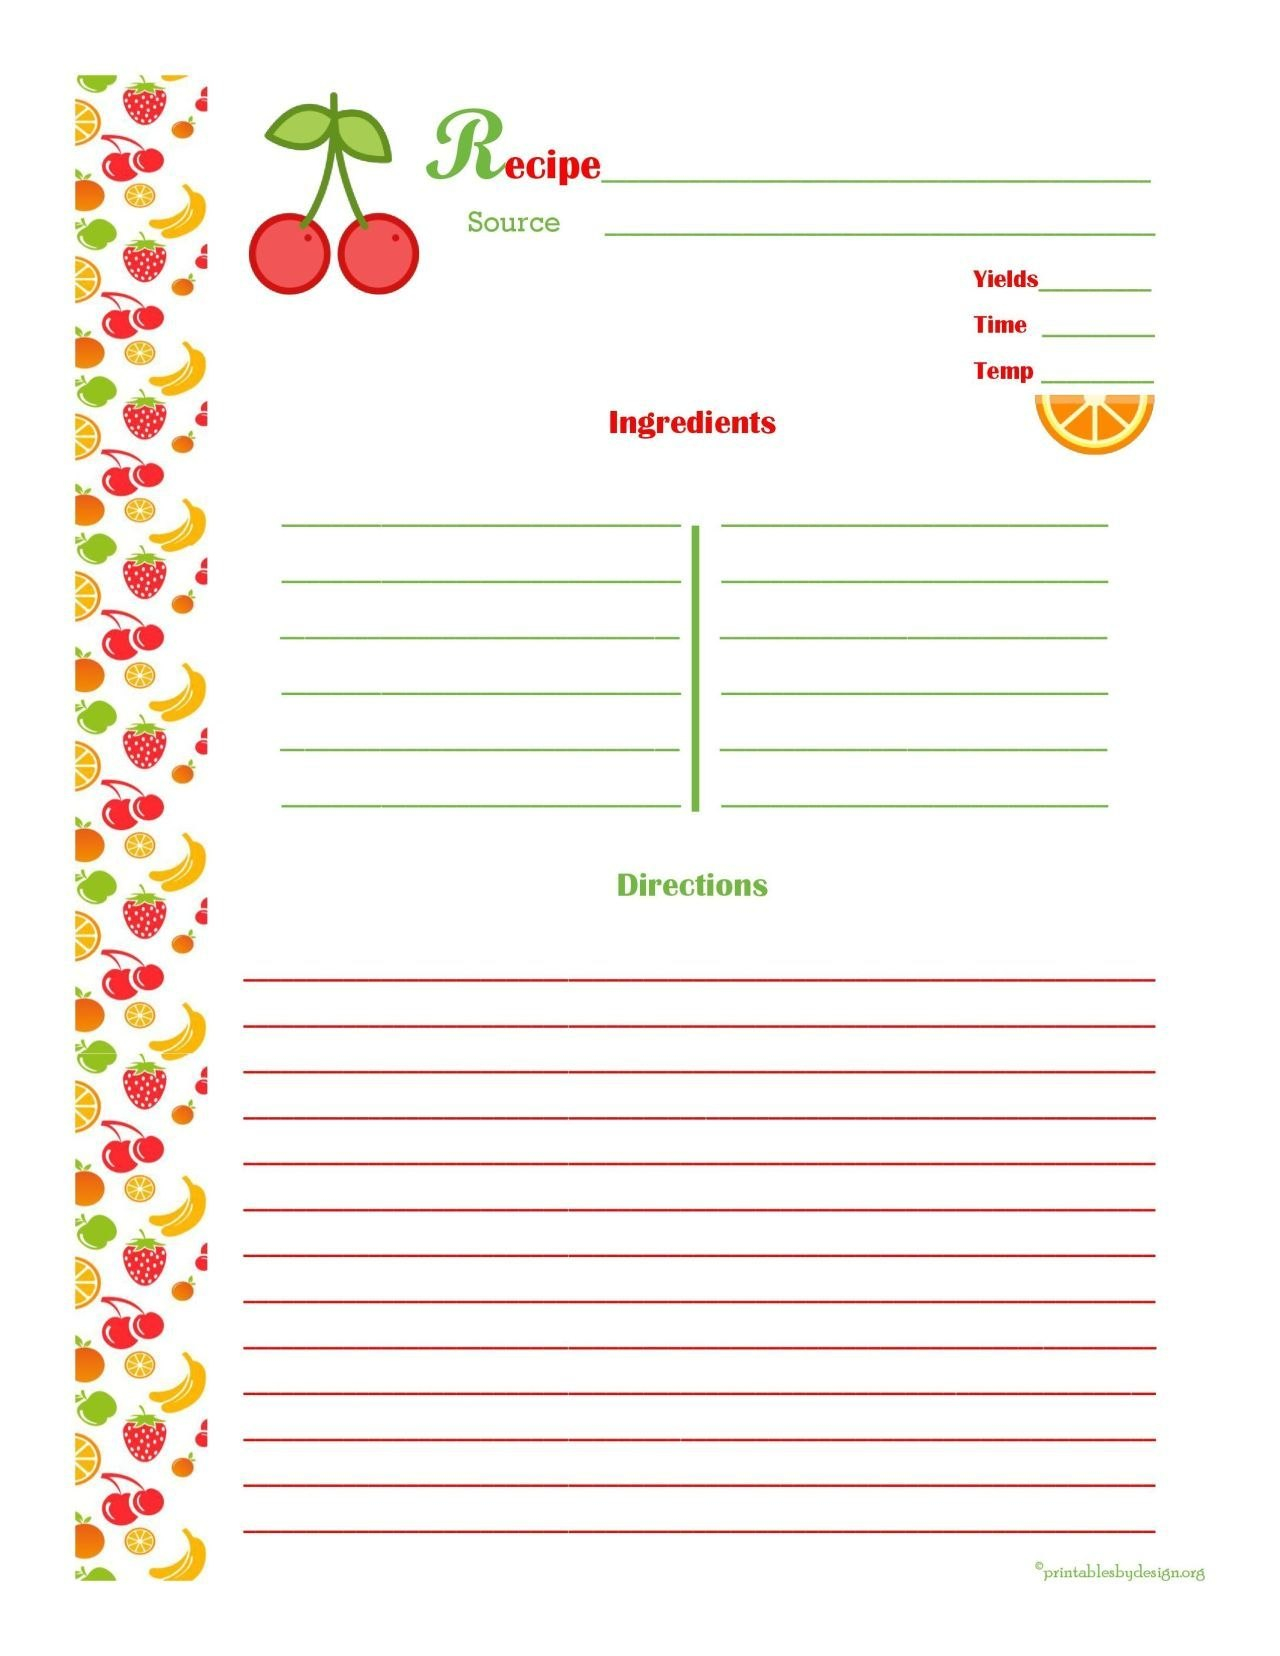 Free Editable Recipe Card Templates For Microsoft Word  Free Intended For Microsoft Word Recipe Card Template